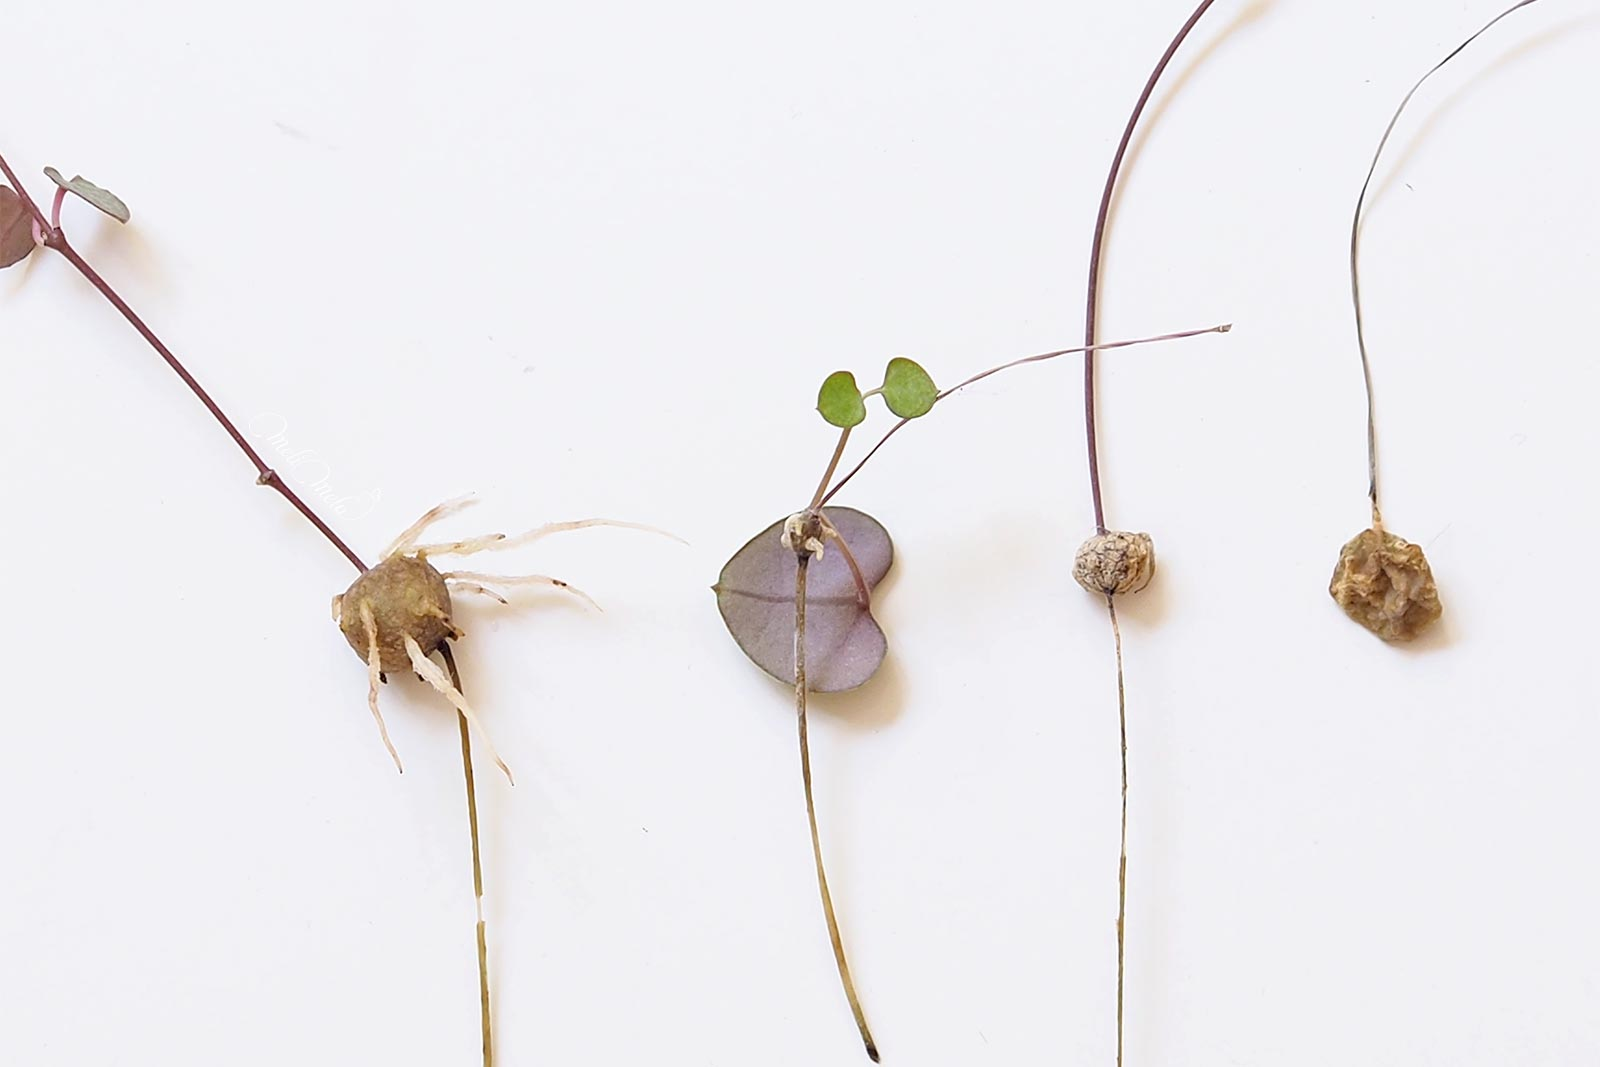 ceropegia-woodii-bouture-racines-tubercule-laboutiquedemelimelo